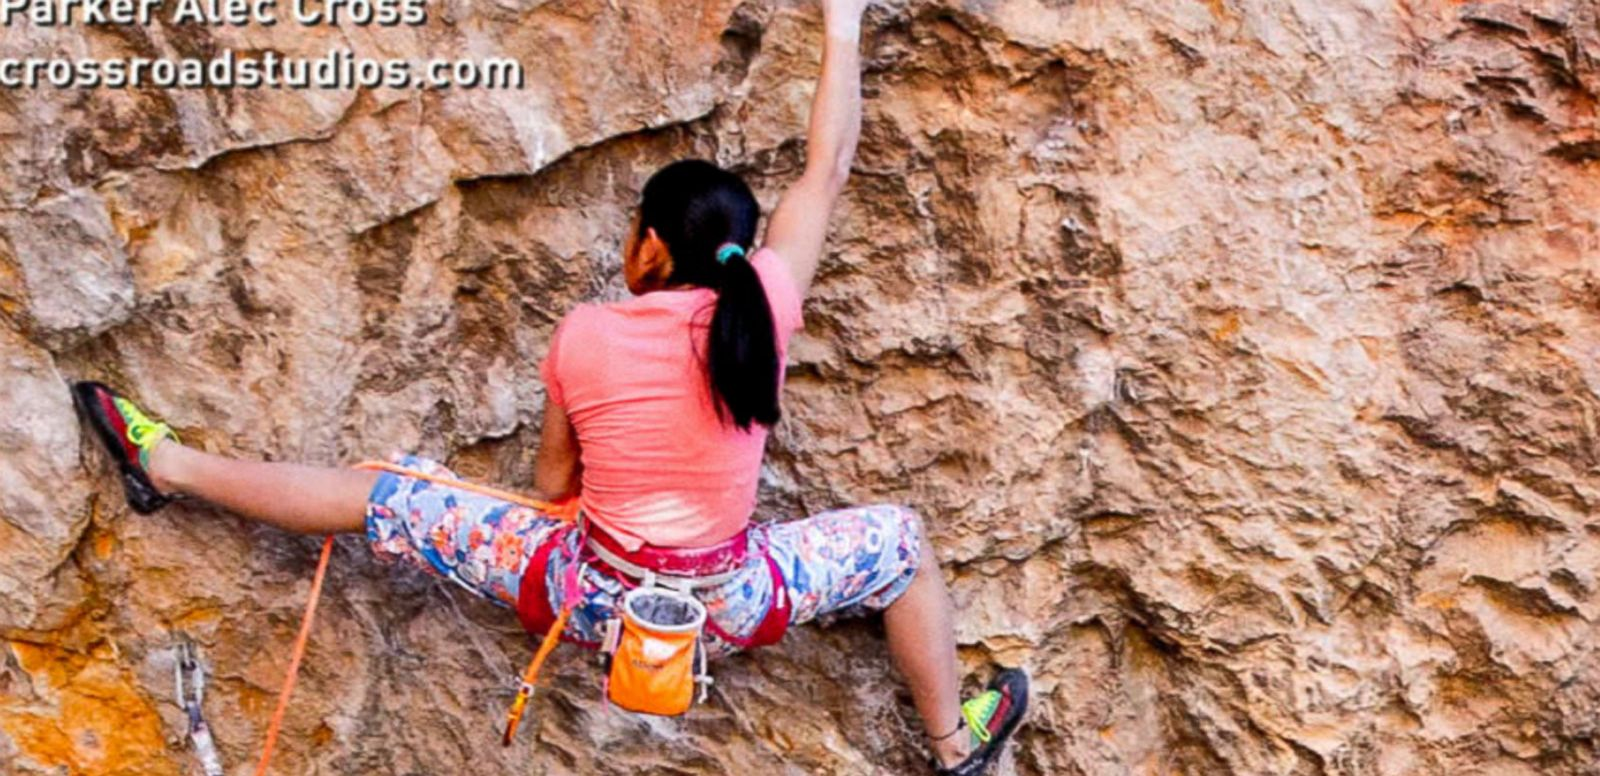 VIDEO: 14-Year-Old Spider Girl Fearlessly Climbs to the Top